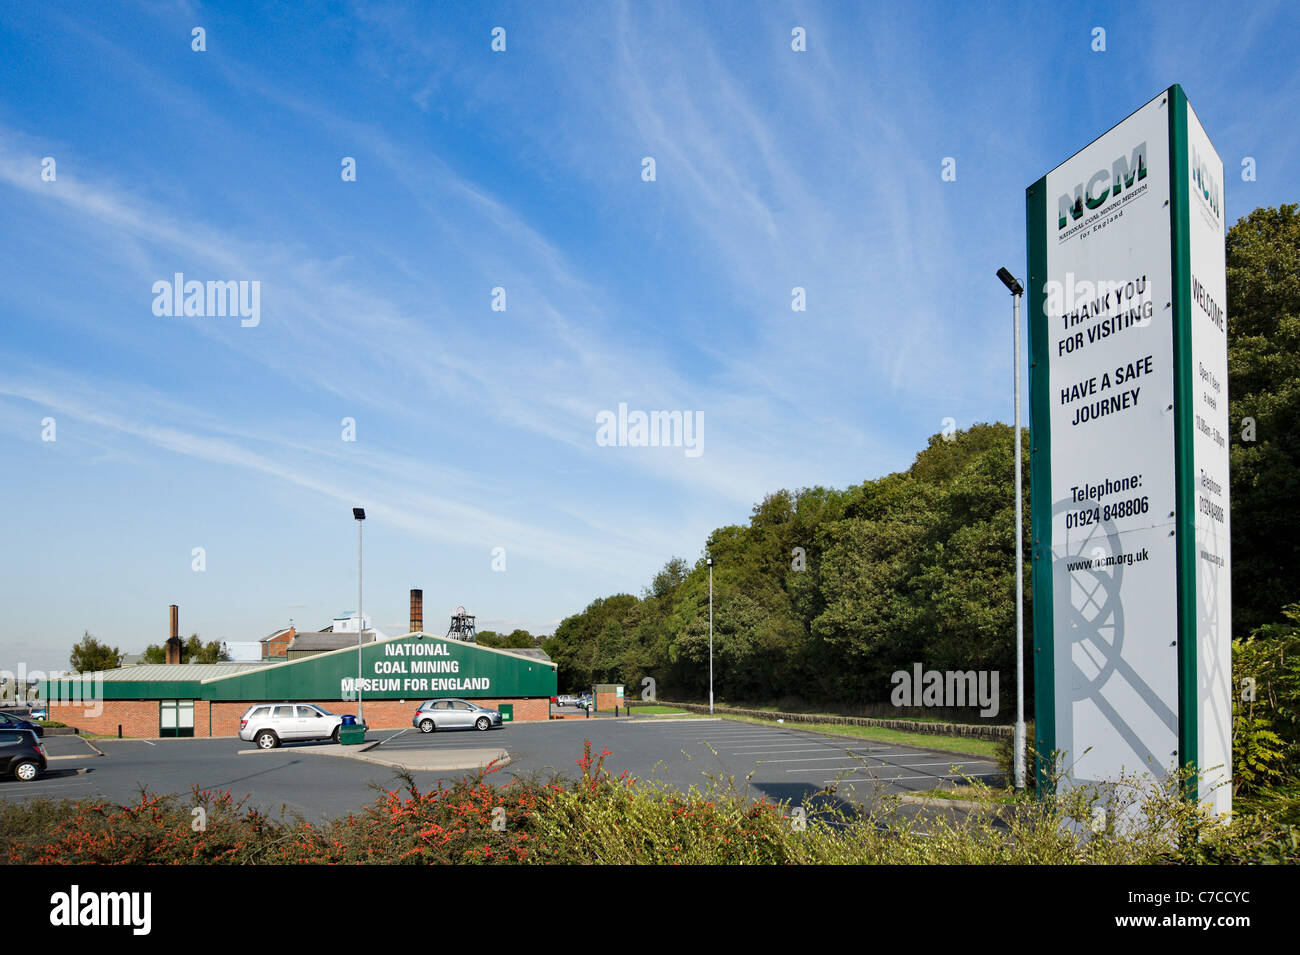 The National Coal Mining Museum for England, Overton, Wakefield, West Yorkshire, UK - Stock Image